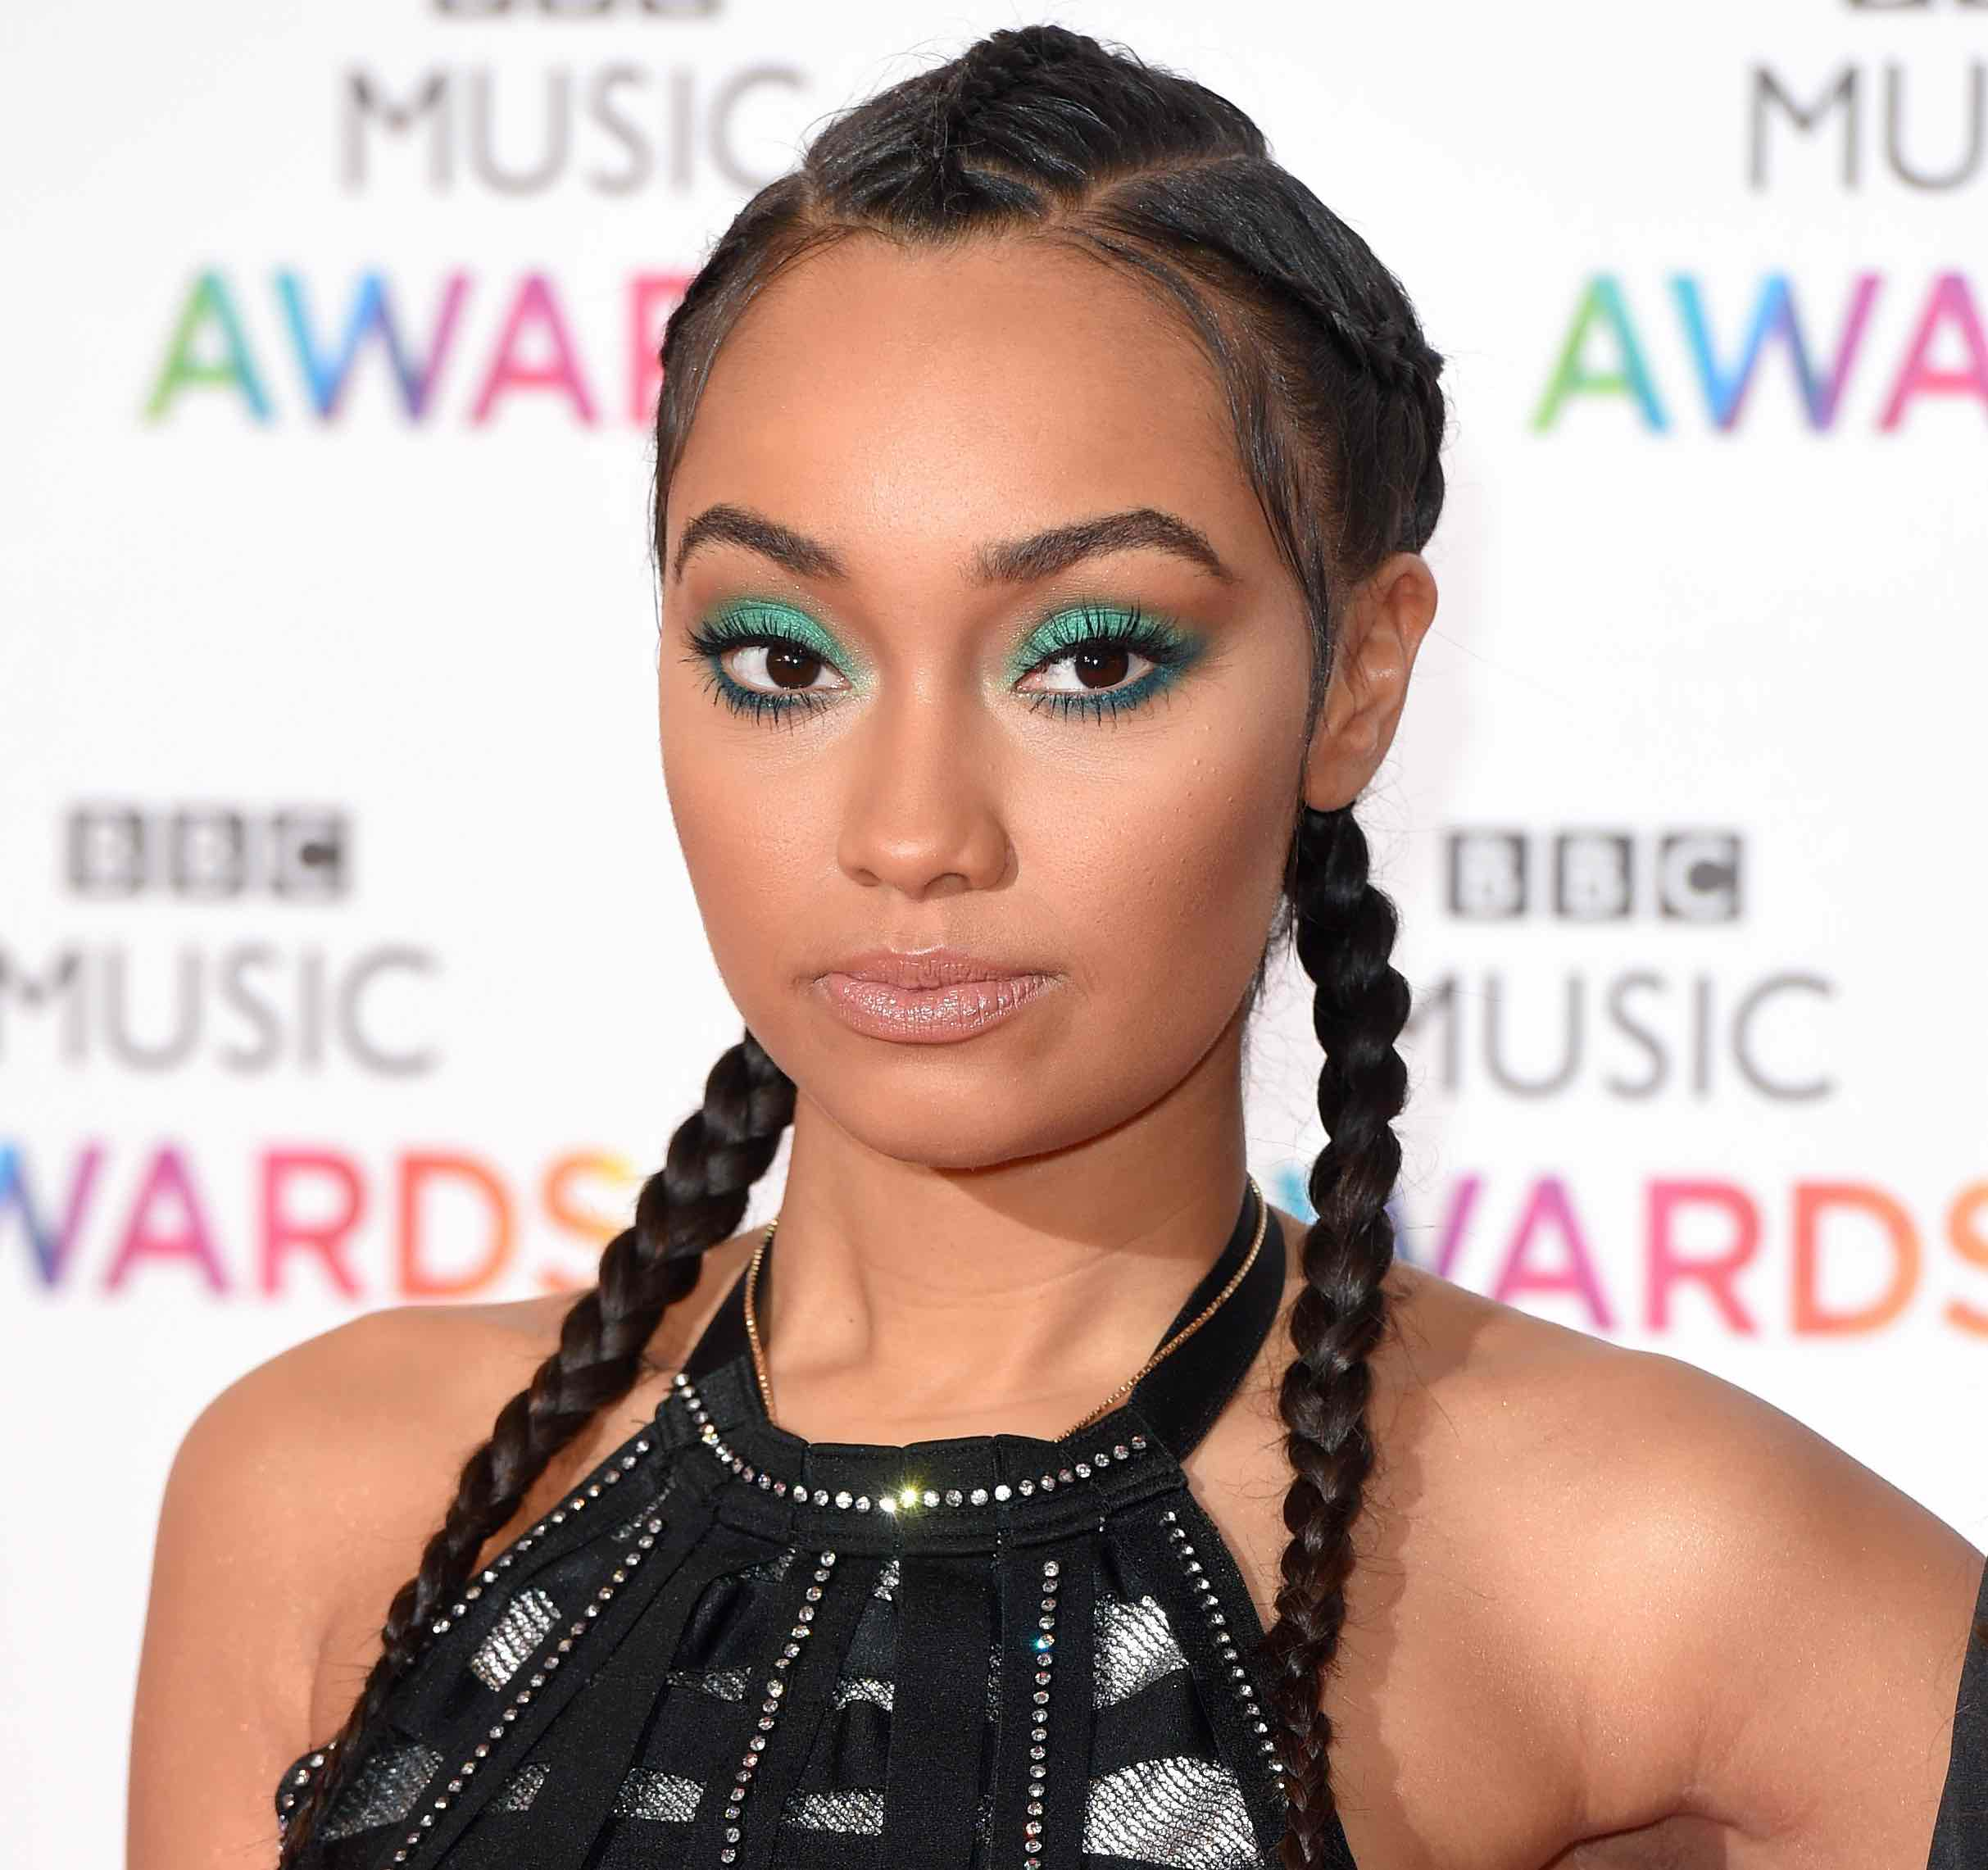 BIRMINGHAM, ENGLAND - DECEMBER 10:  Leigh-Anne Pinnock of Little Mix attends the BBC Music Awards at Genting Arena on December 10, 2015 in Birmingham, England.  (Photo by Karwai Tang/WireImage)